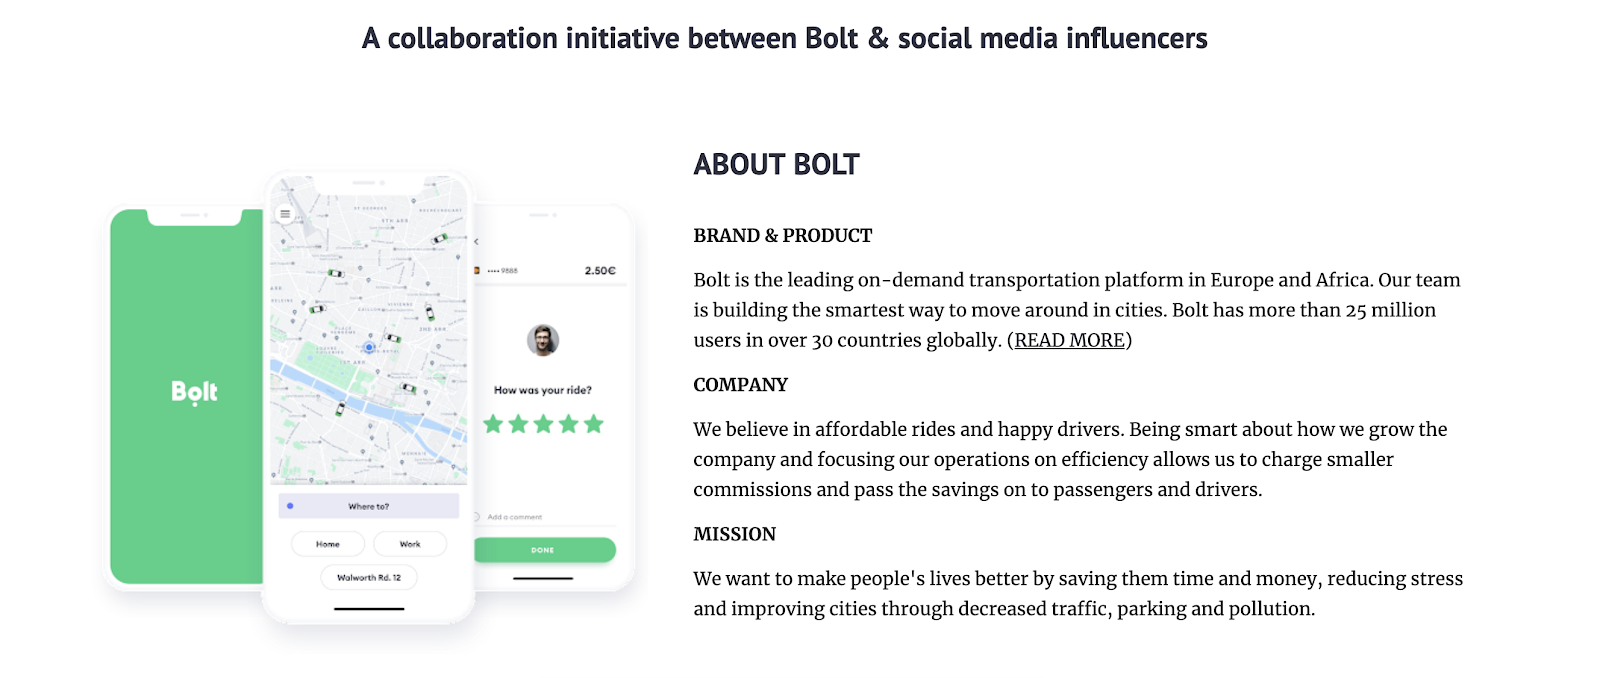 A sample of Bolt's page dedicated to communicating their brand ambassador program